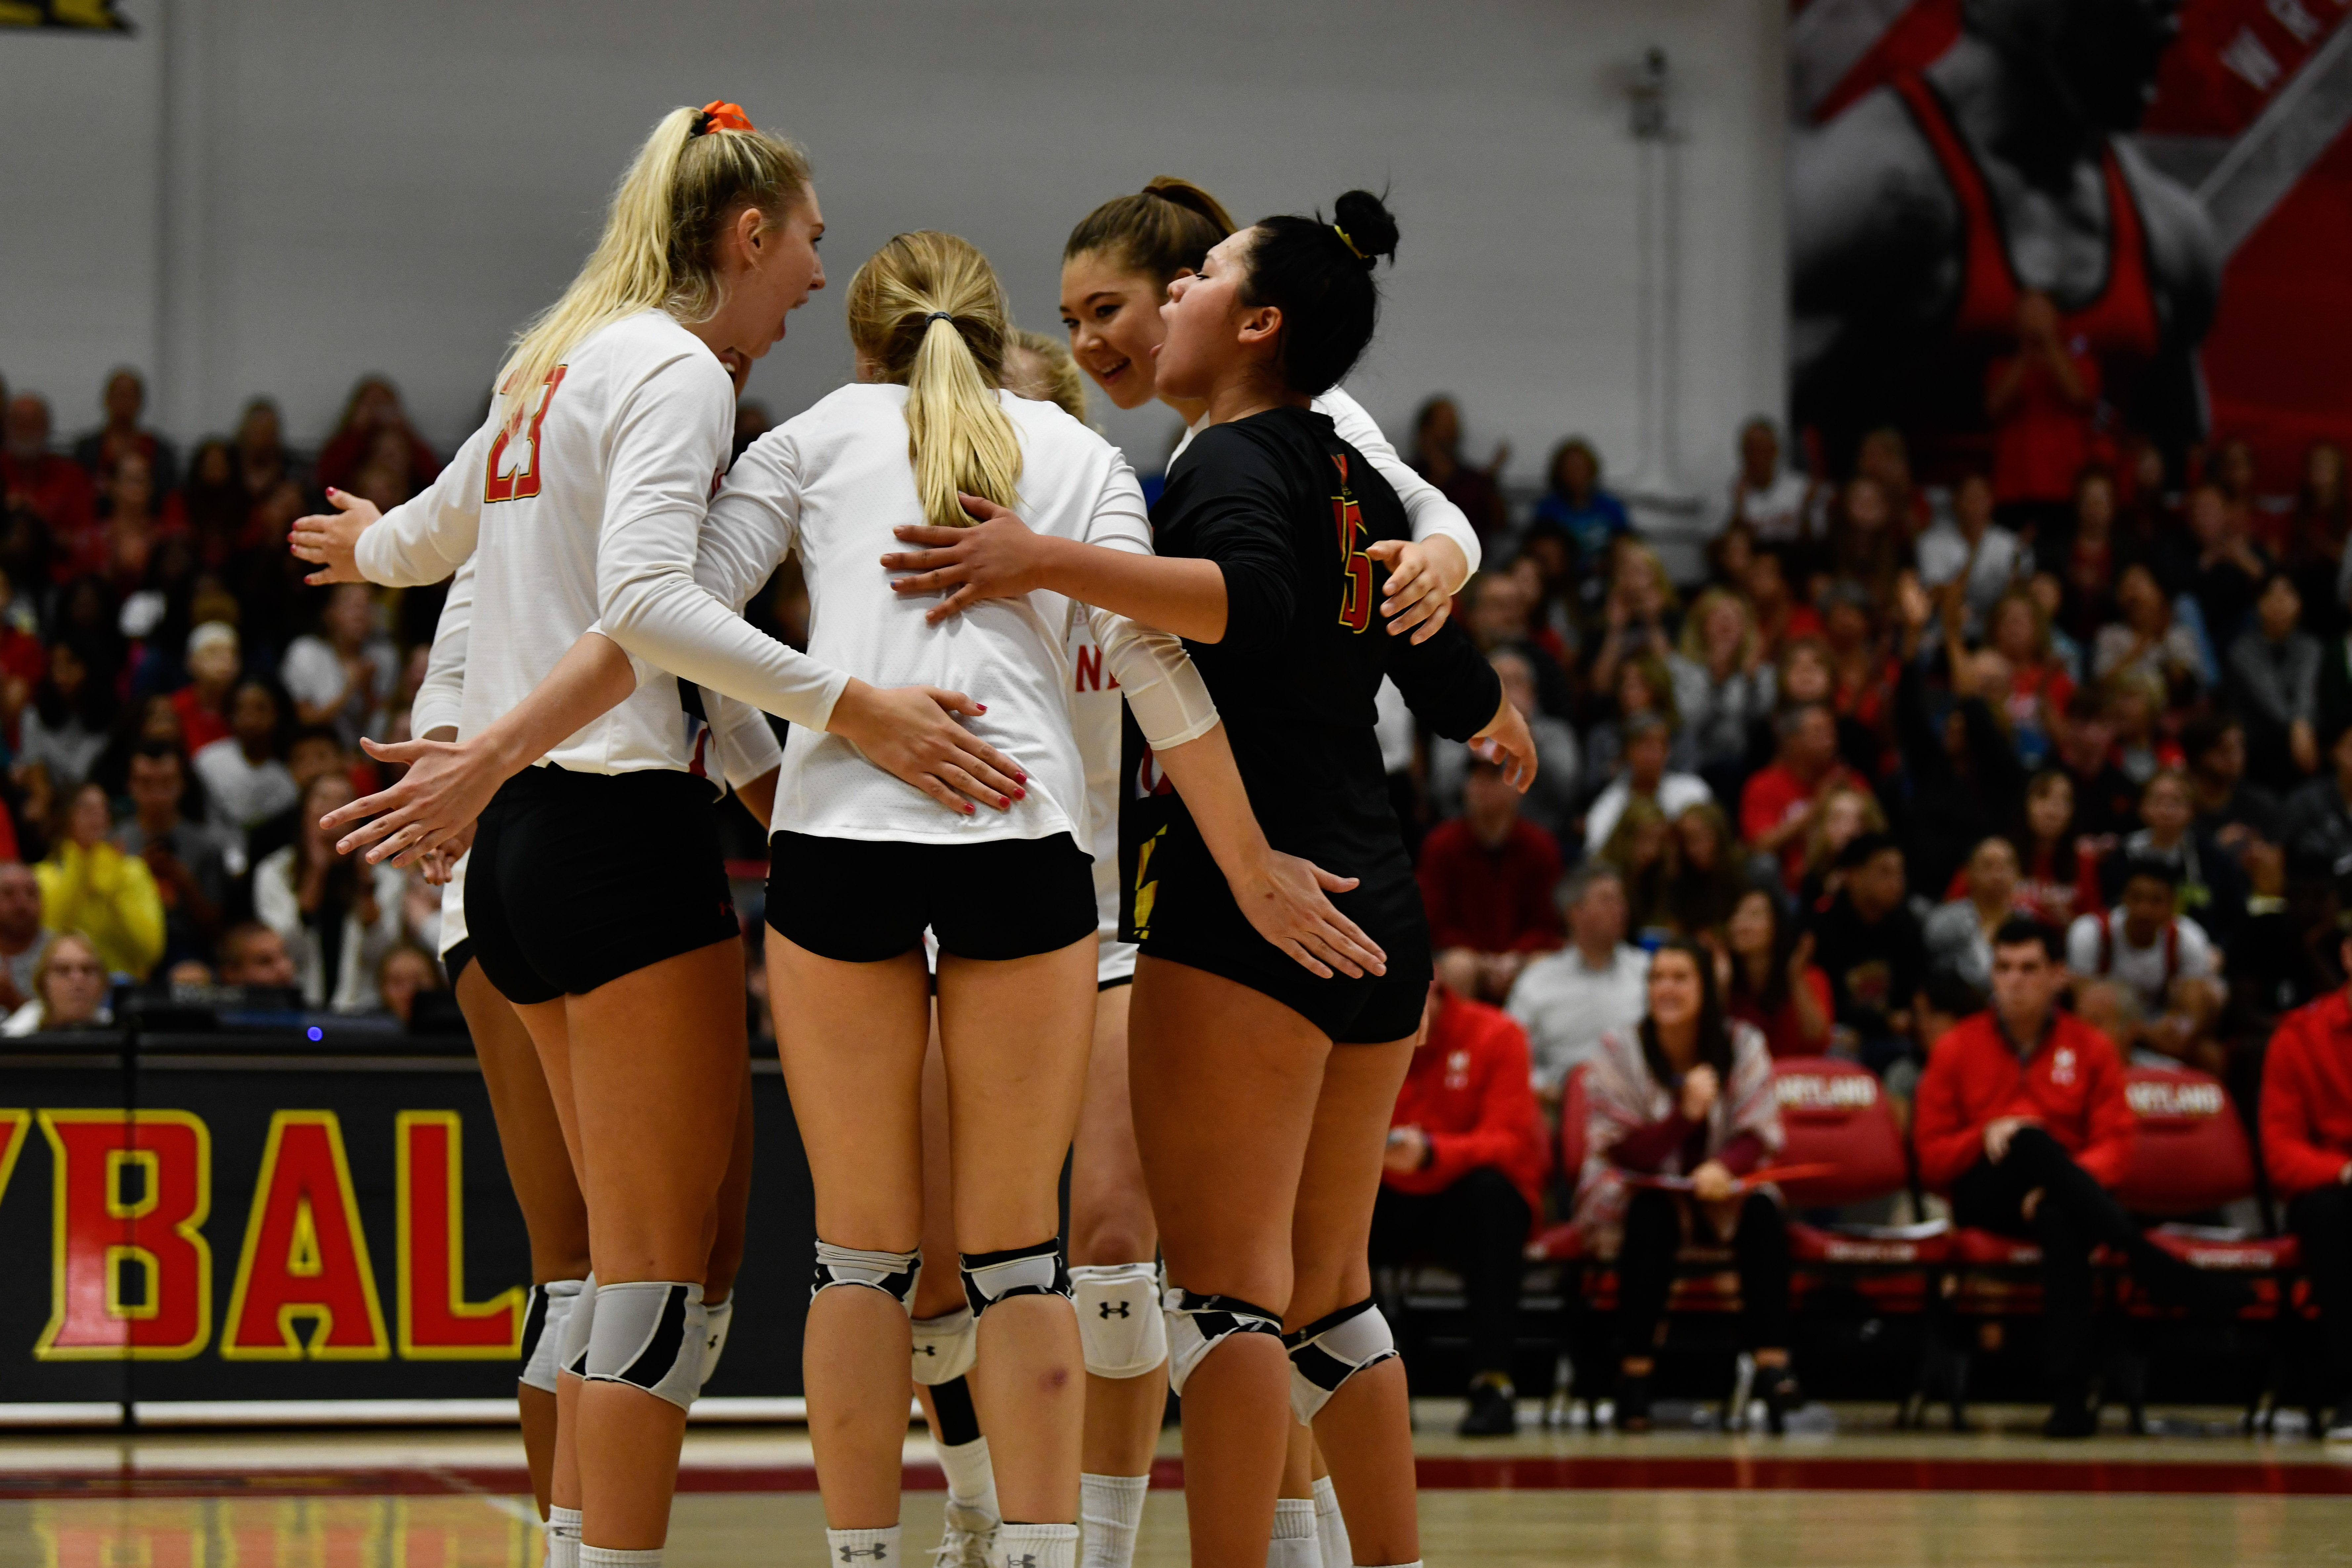 Maryland volleyball team huddle 2019